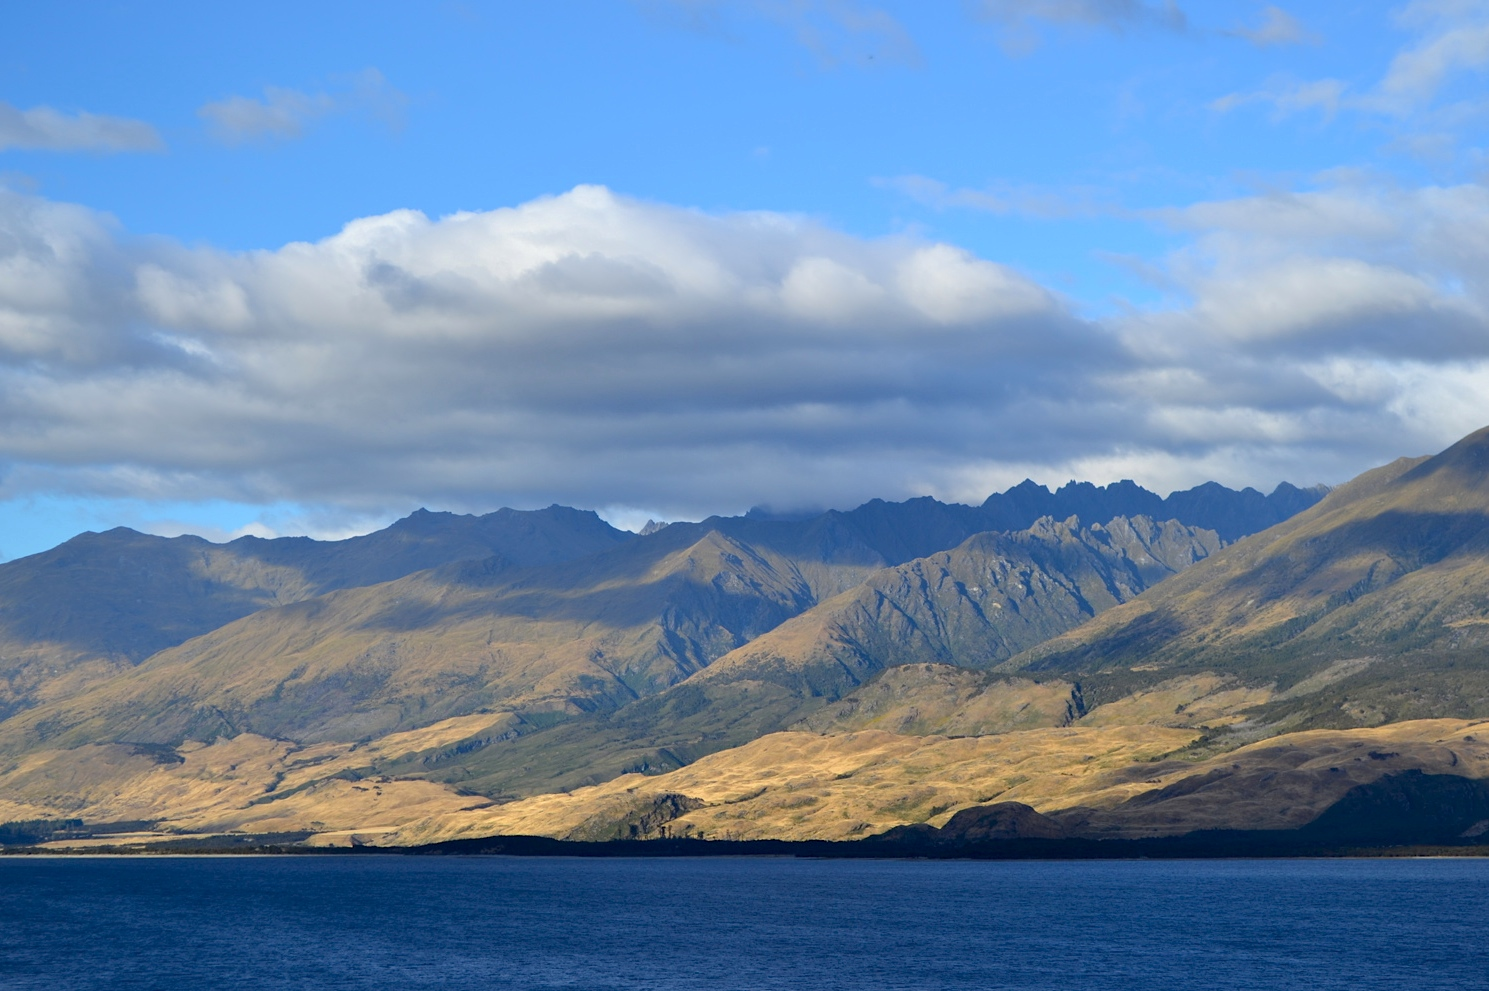 Lake Wanaka, Central Otago, New Zealand